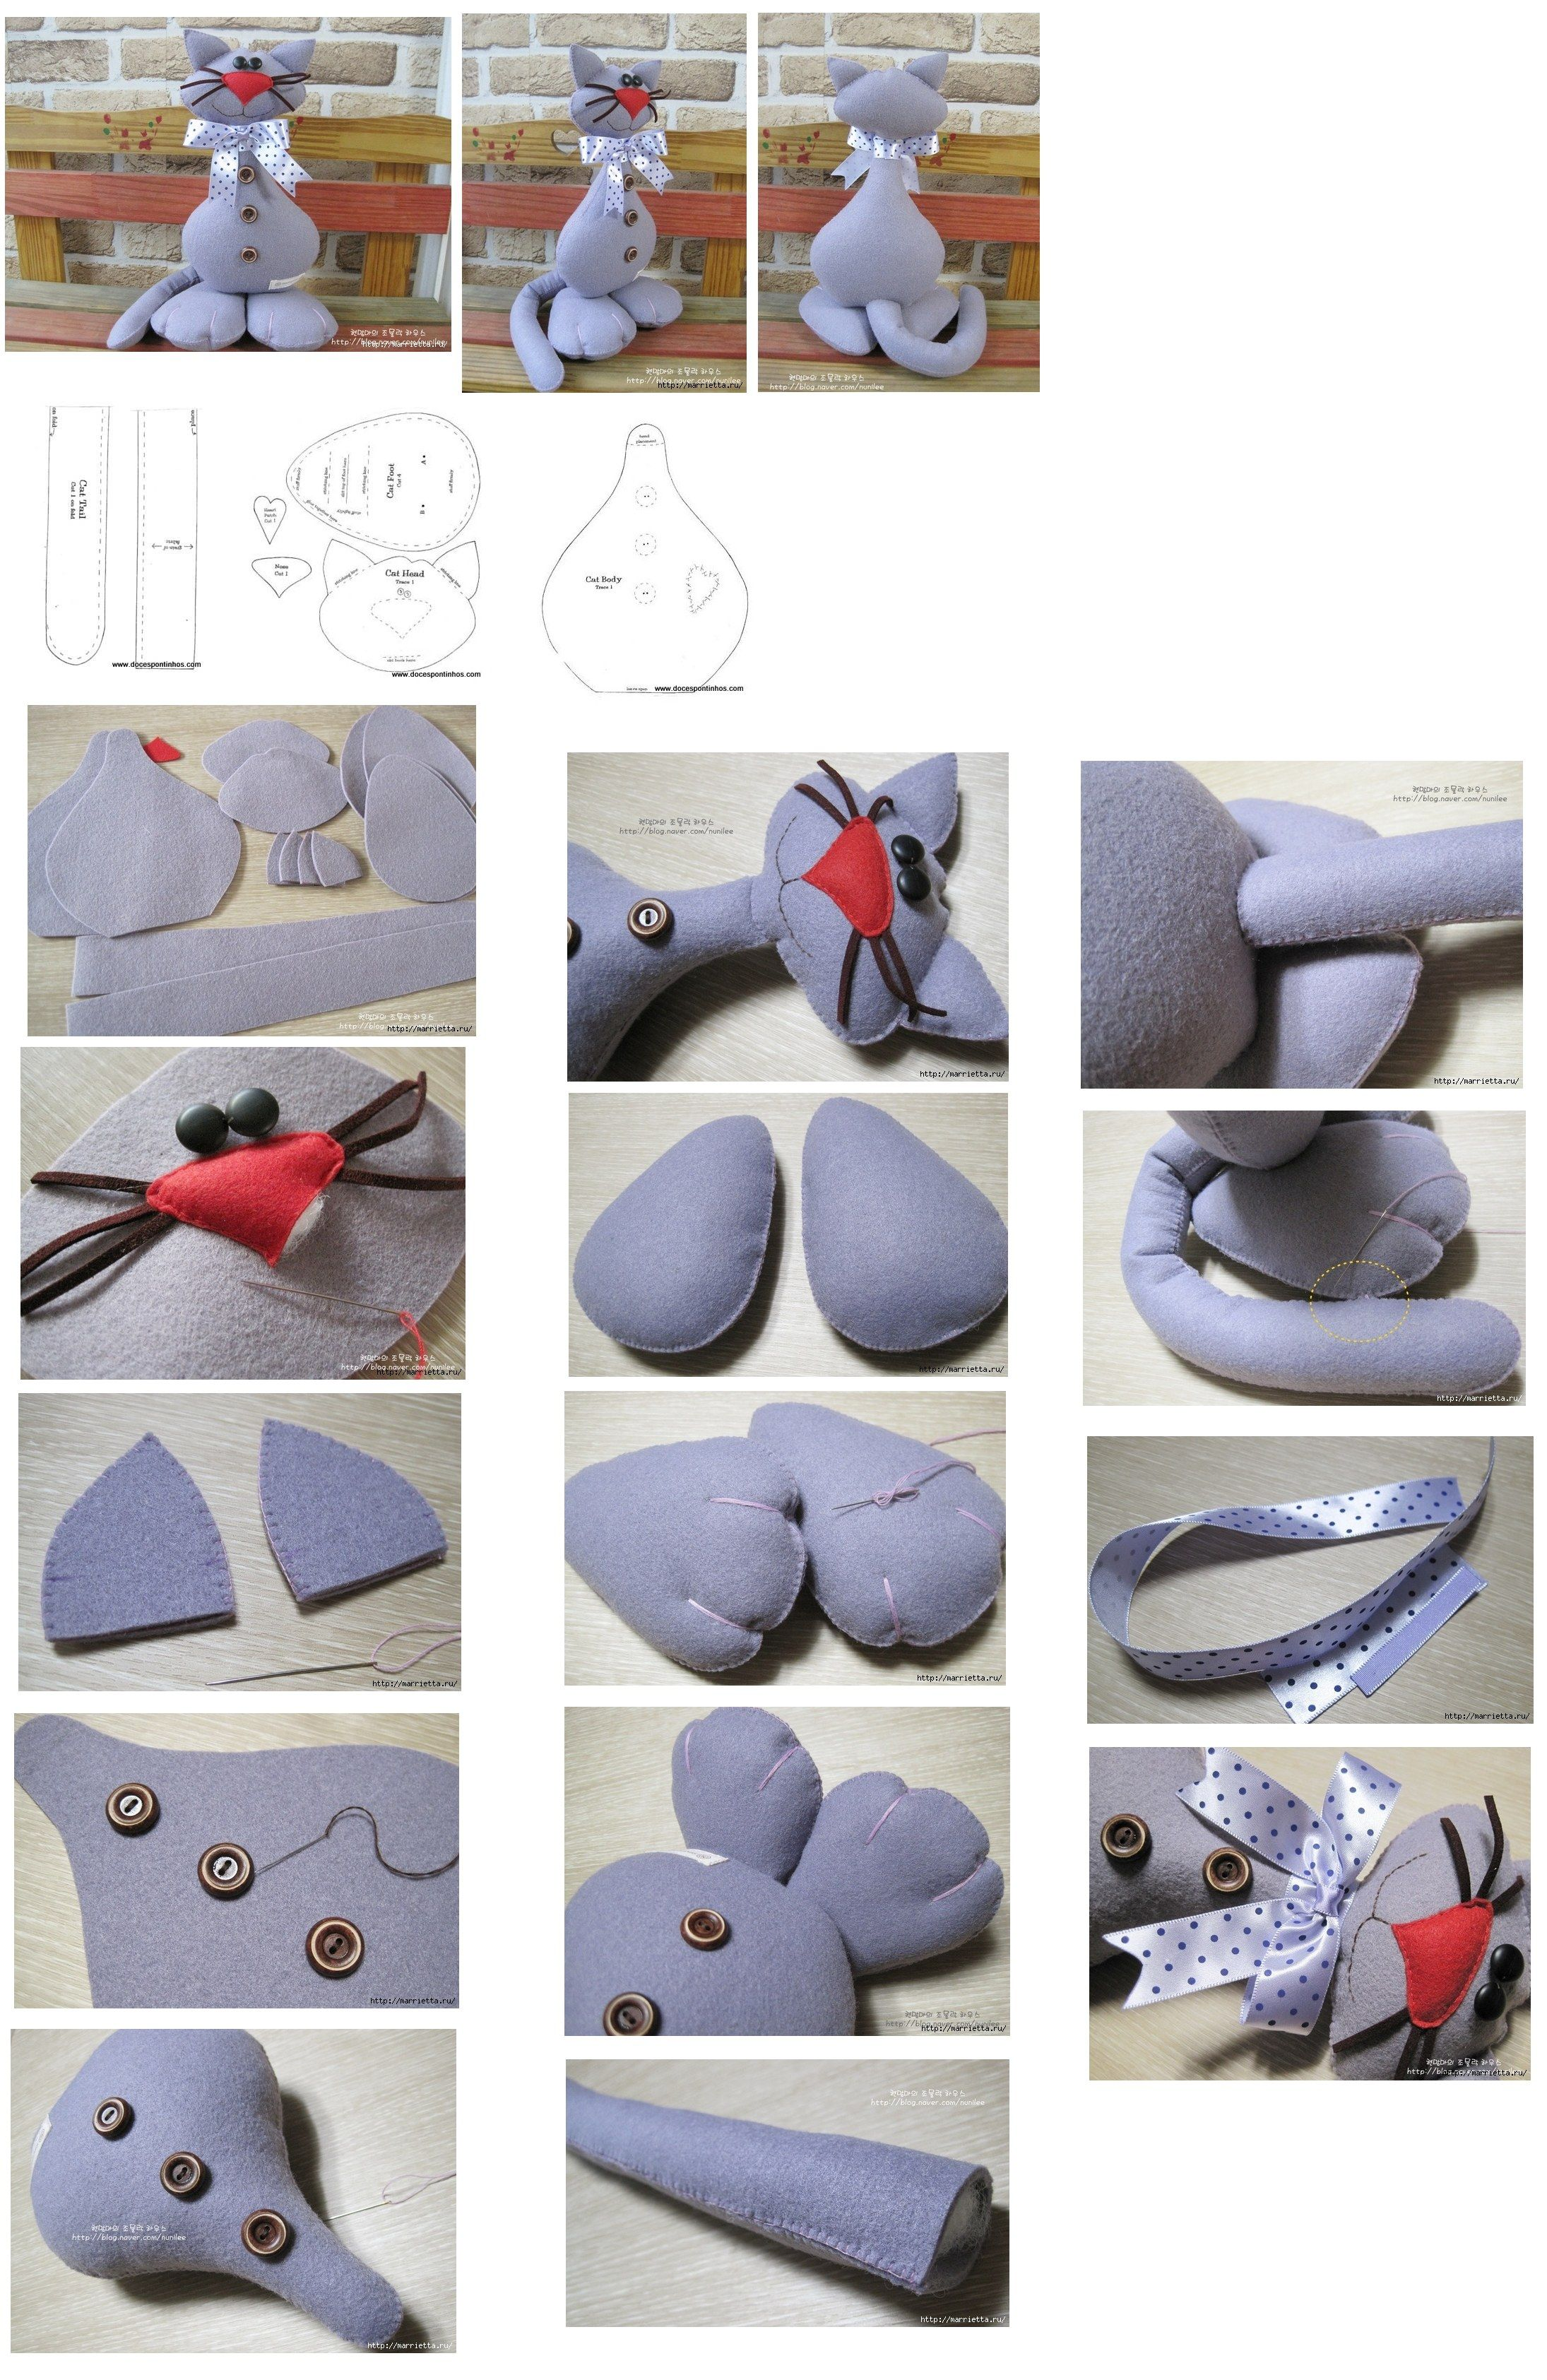 cat stuffed toy pattern how to with pictures | DIY projects ...